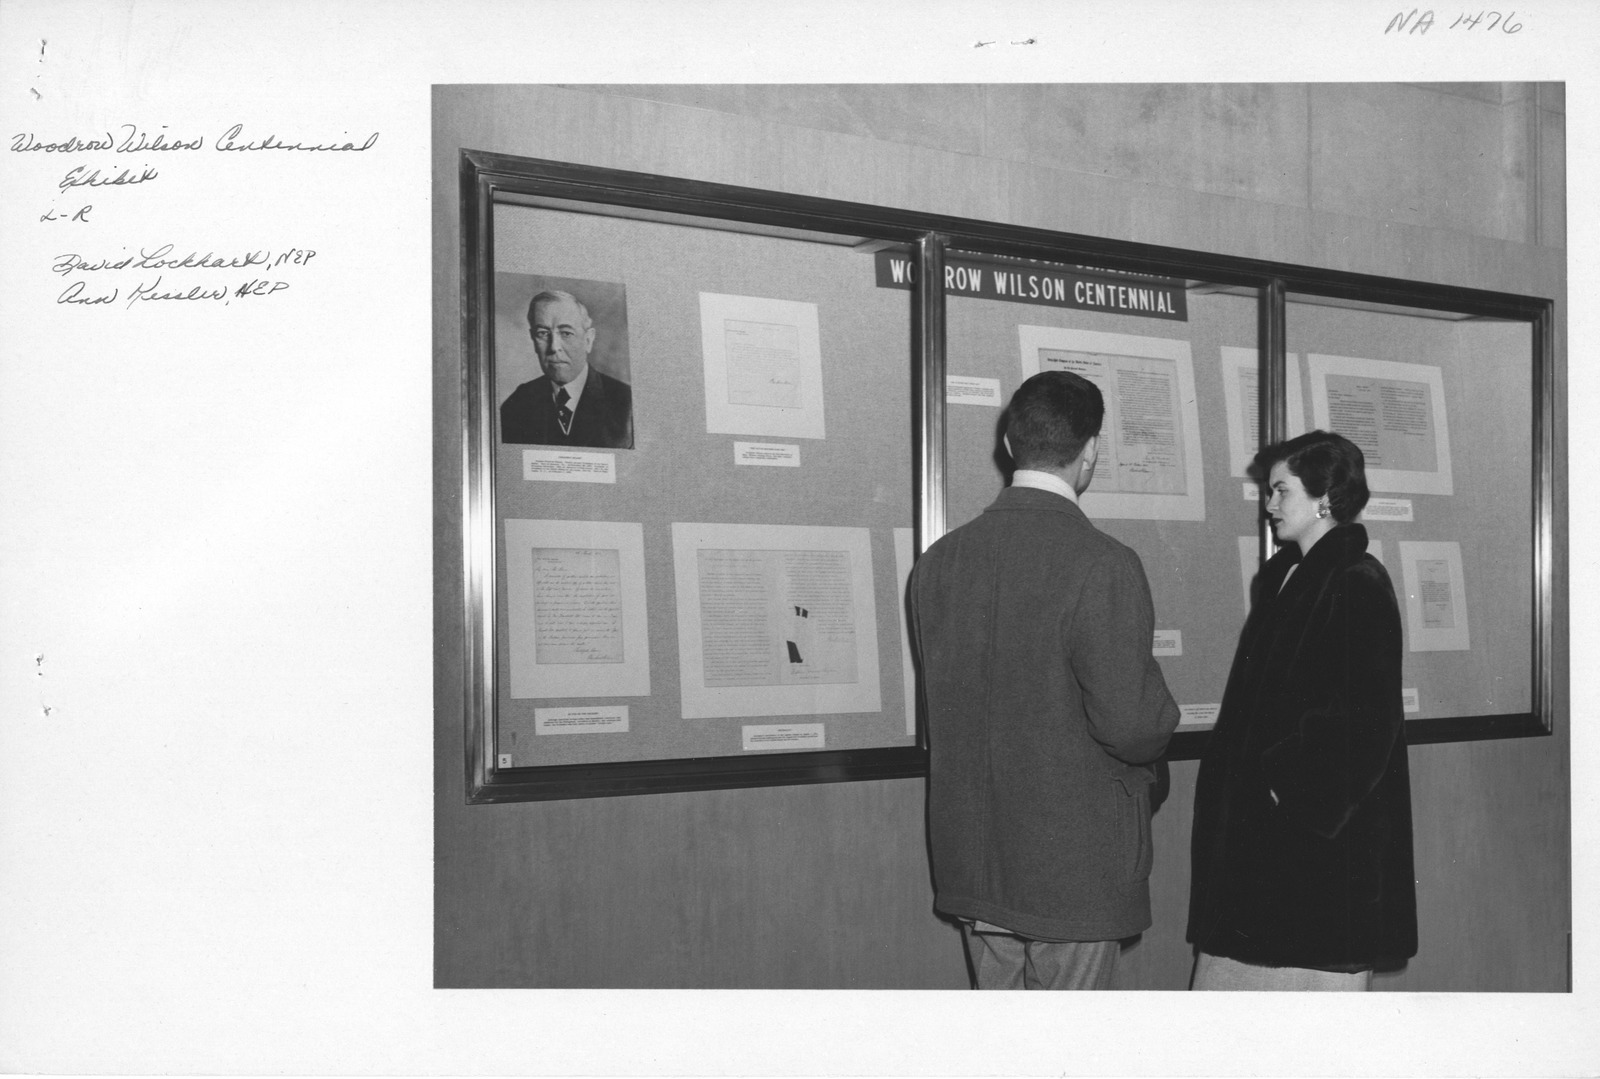 Photograph of Ann Kessler and David Lockhart (Exhibits and Publications) Viewing the Woodrow Wilson Centennial Exhibit